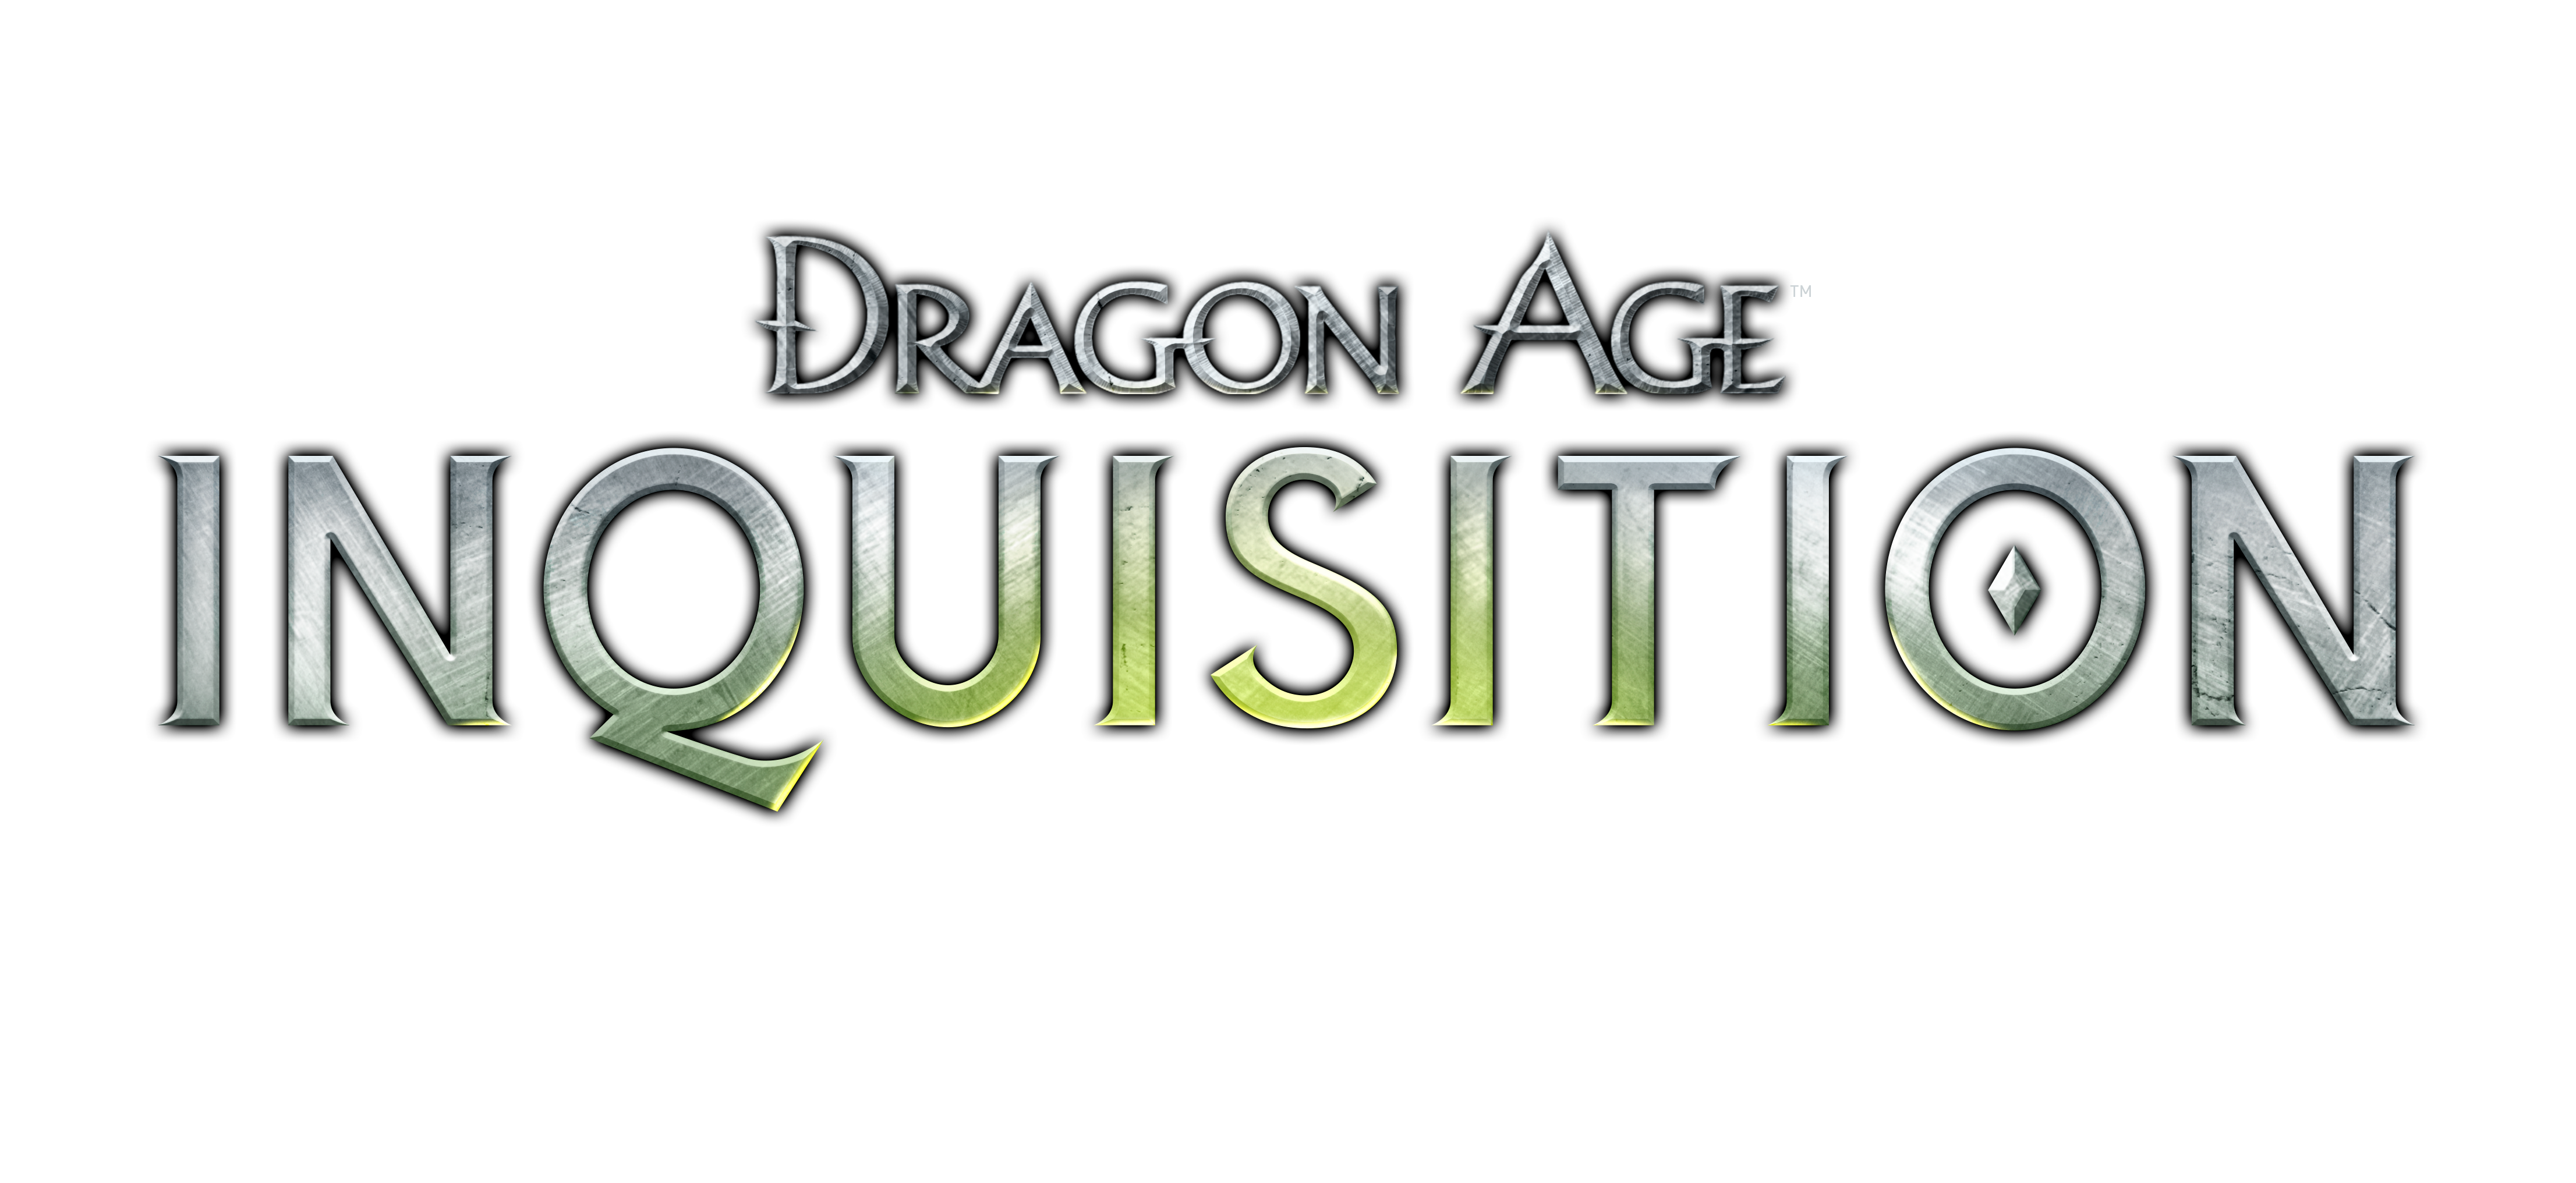 Dragon age 2 logo png. File inquisition wikimedia commons